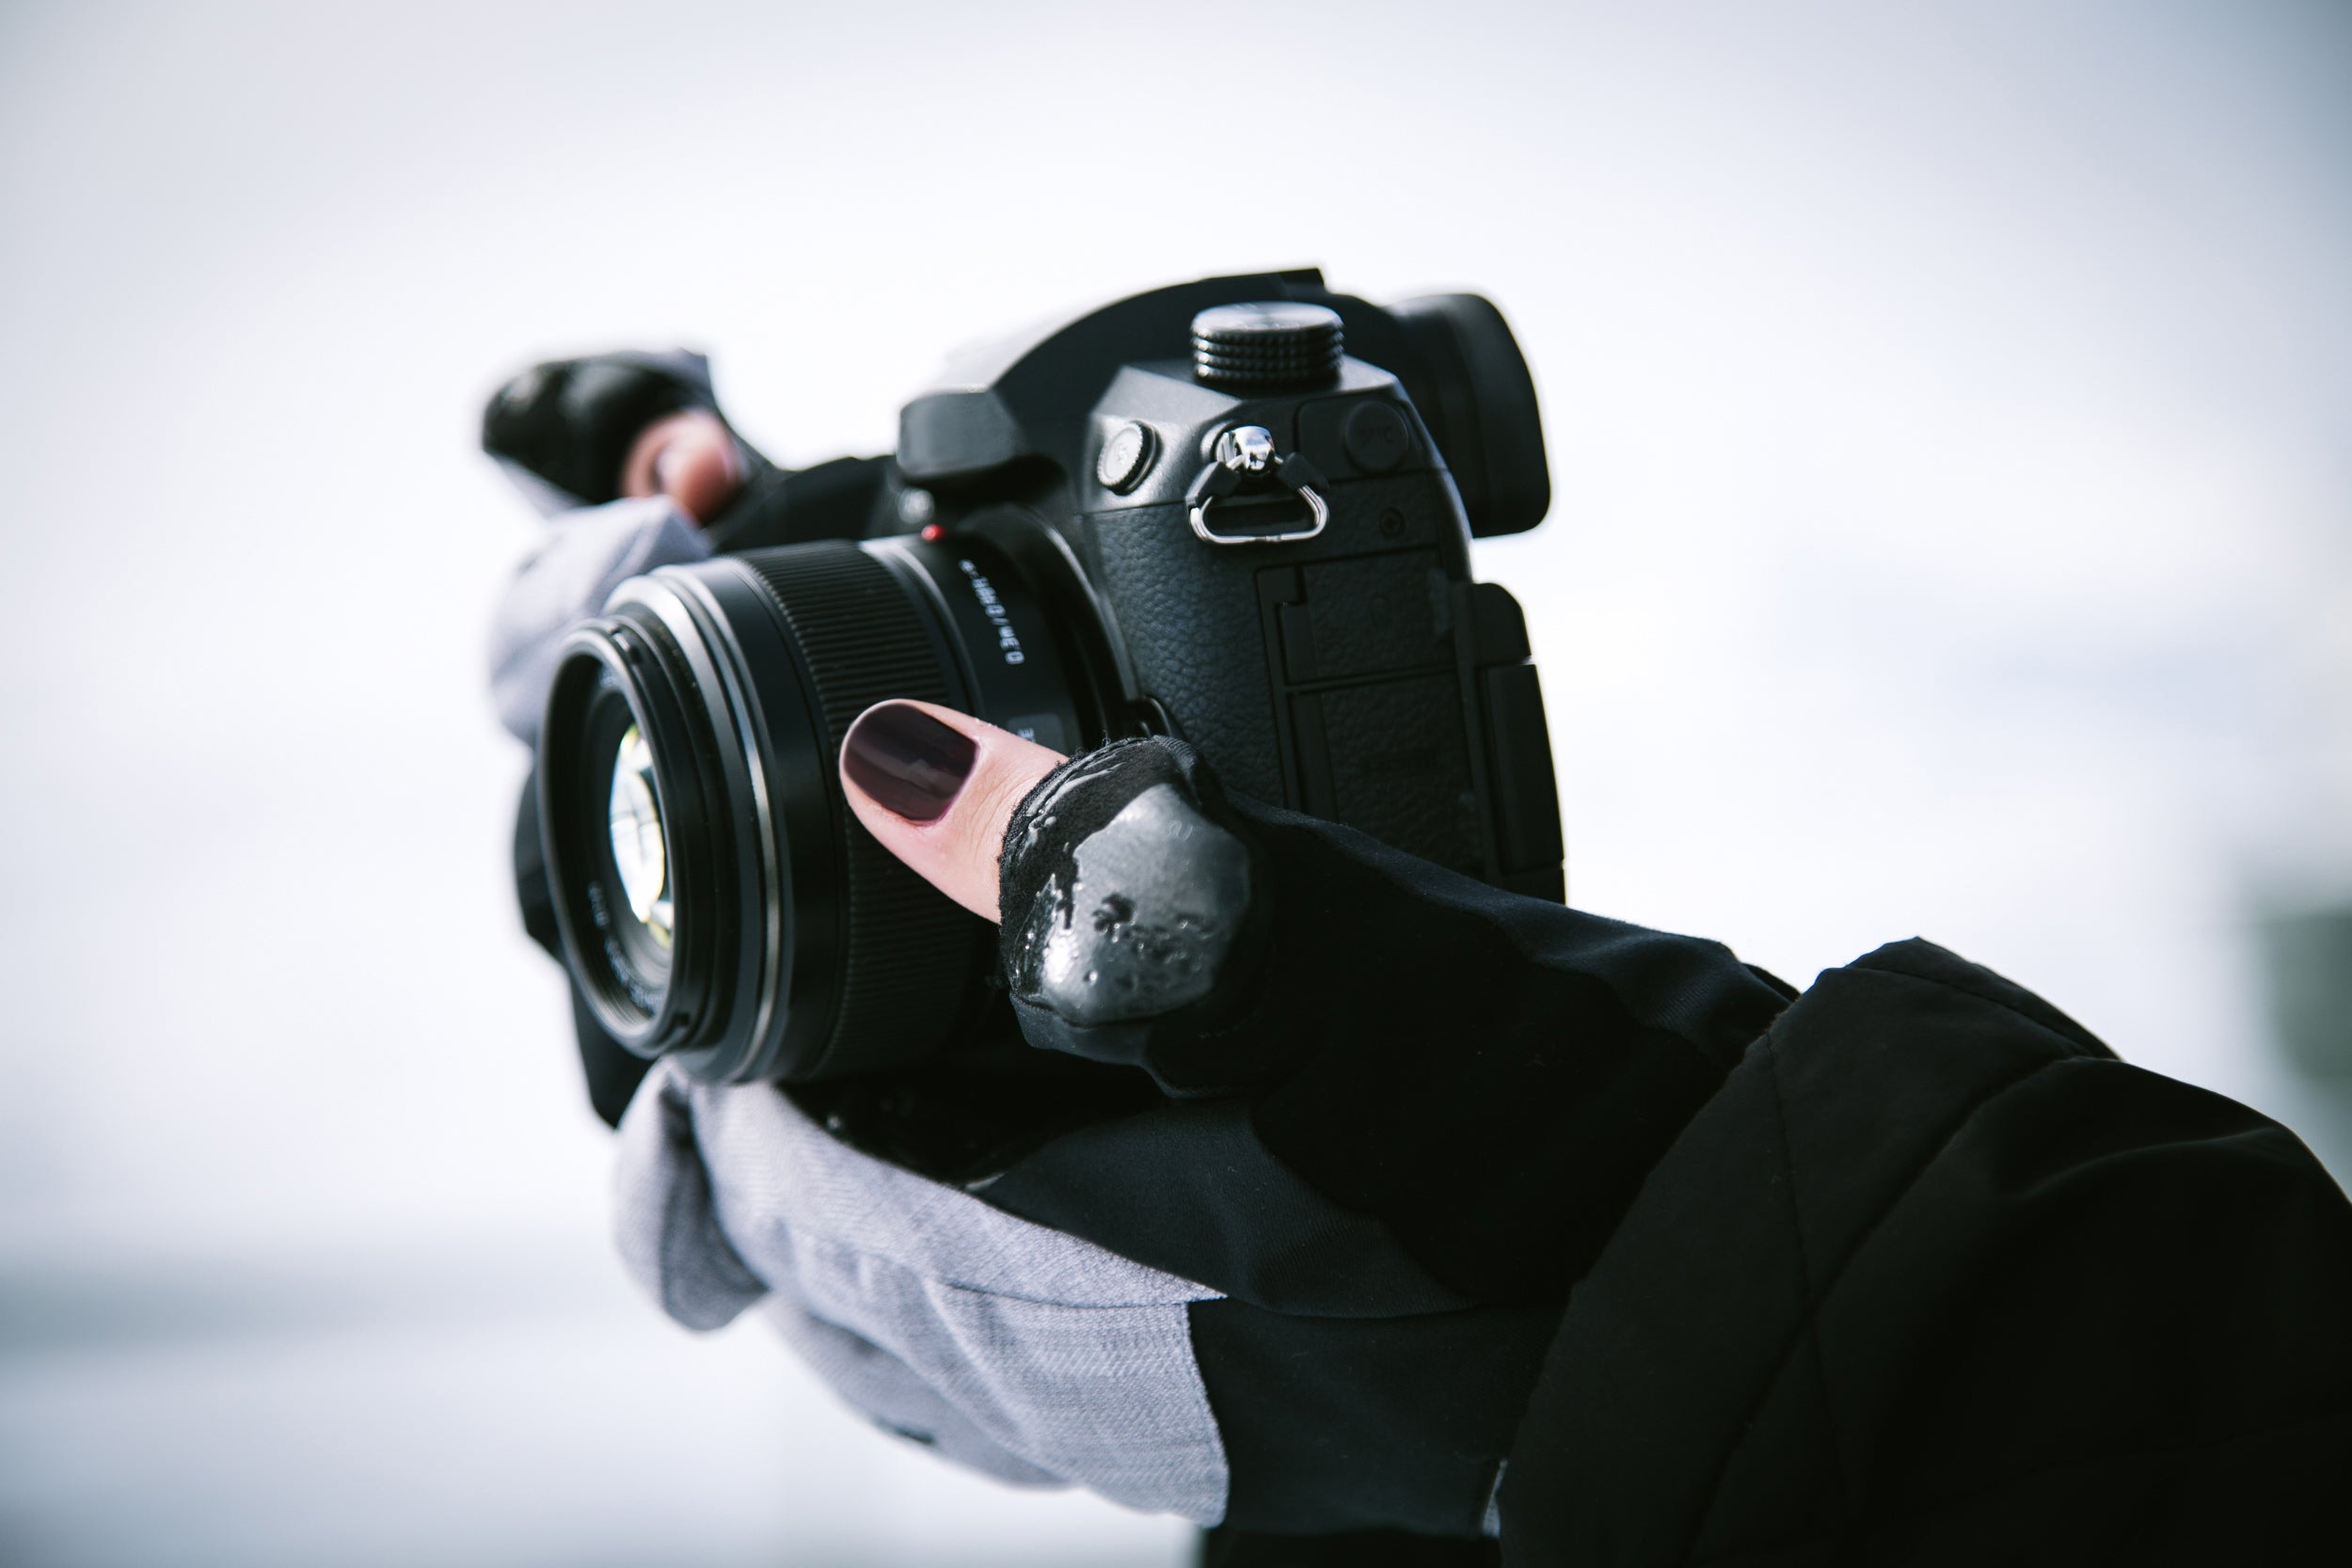 Gloves for winter photography